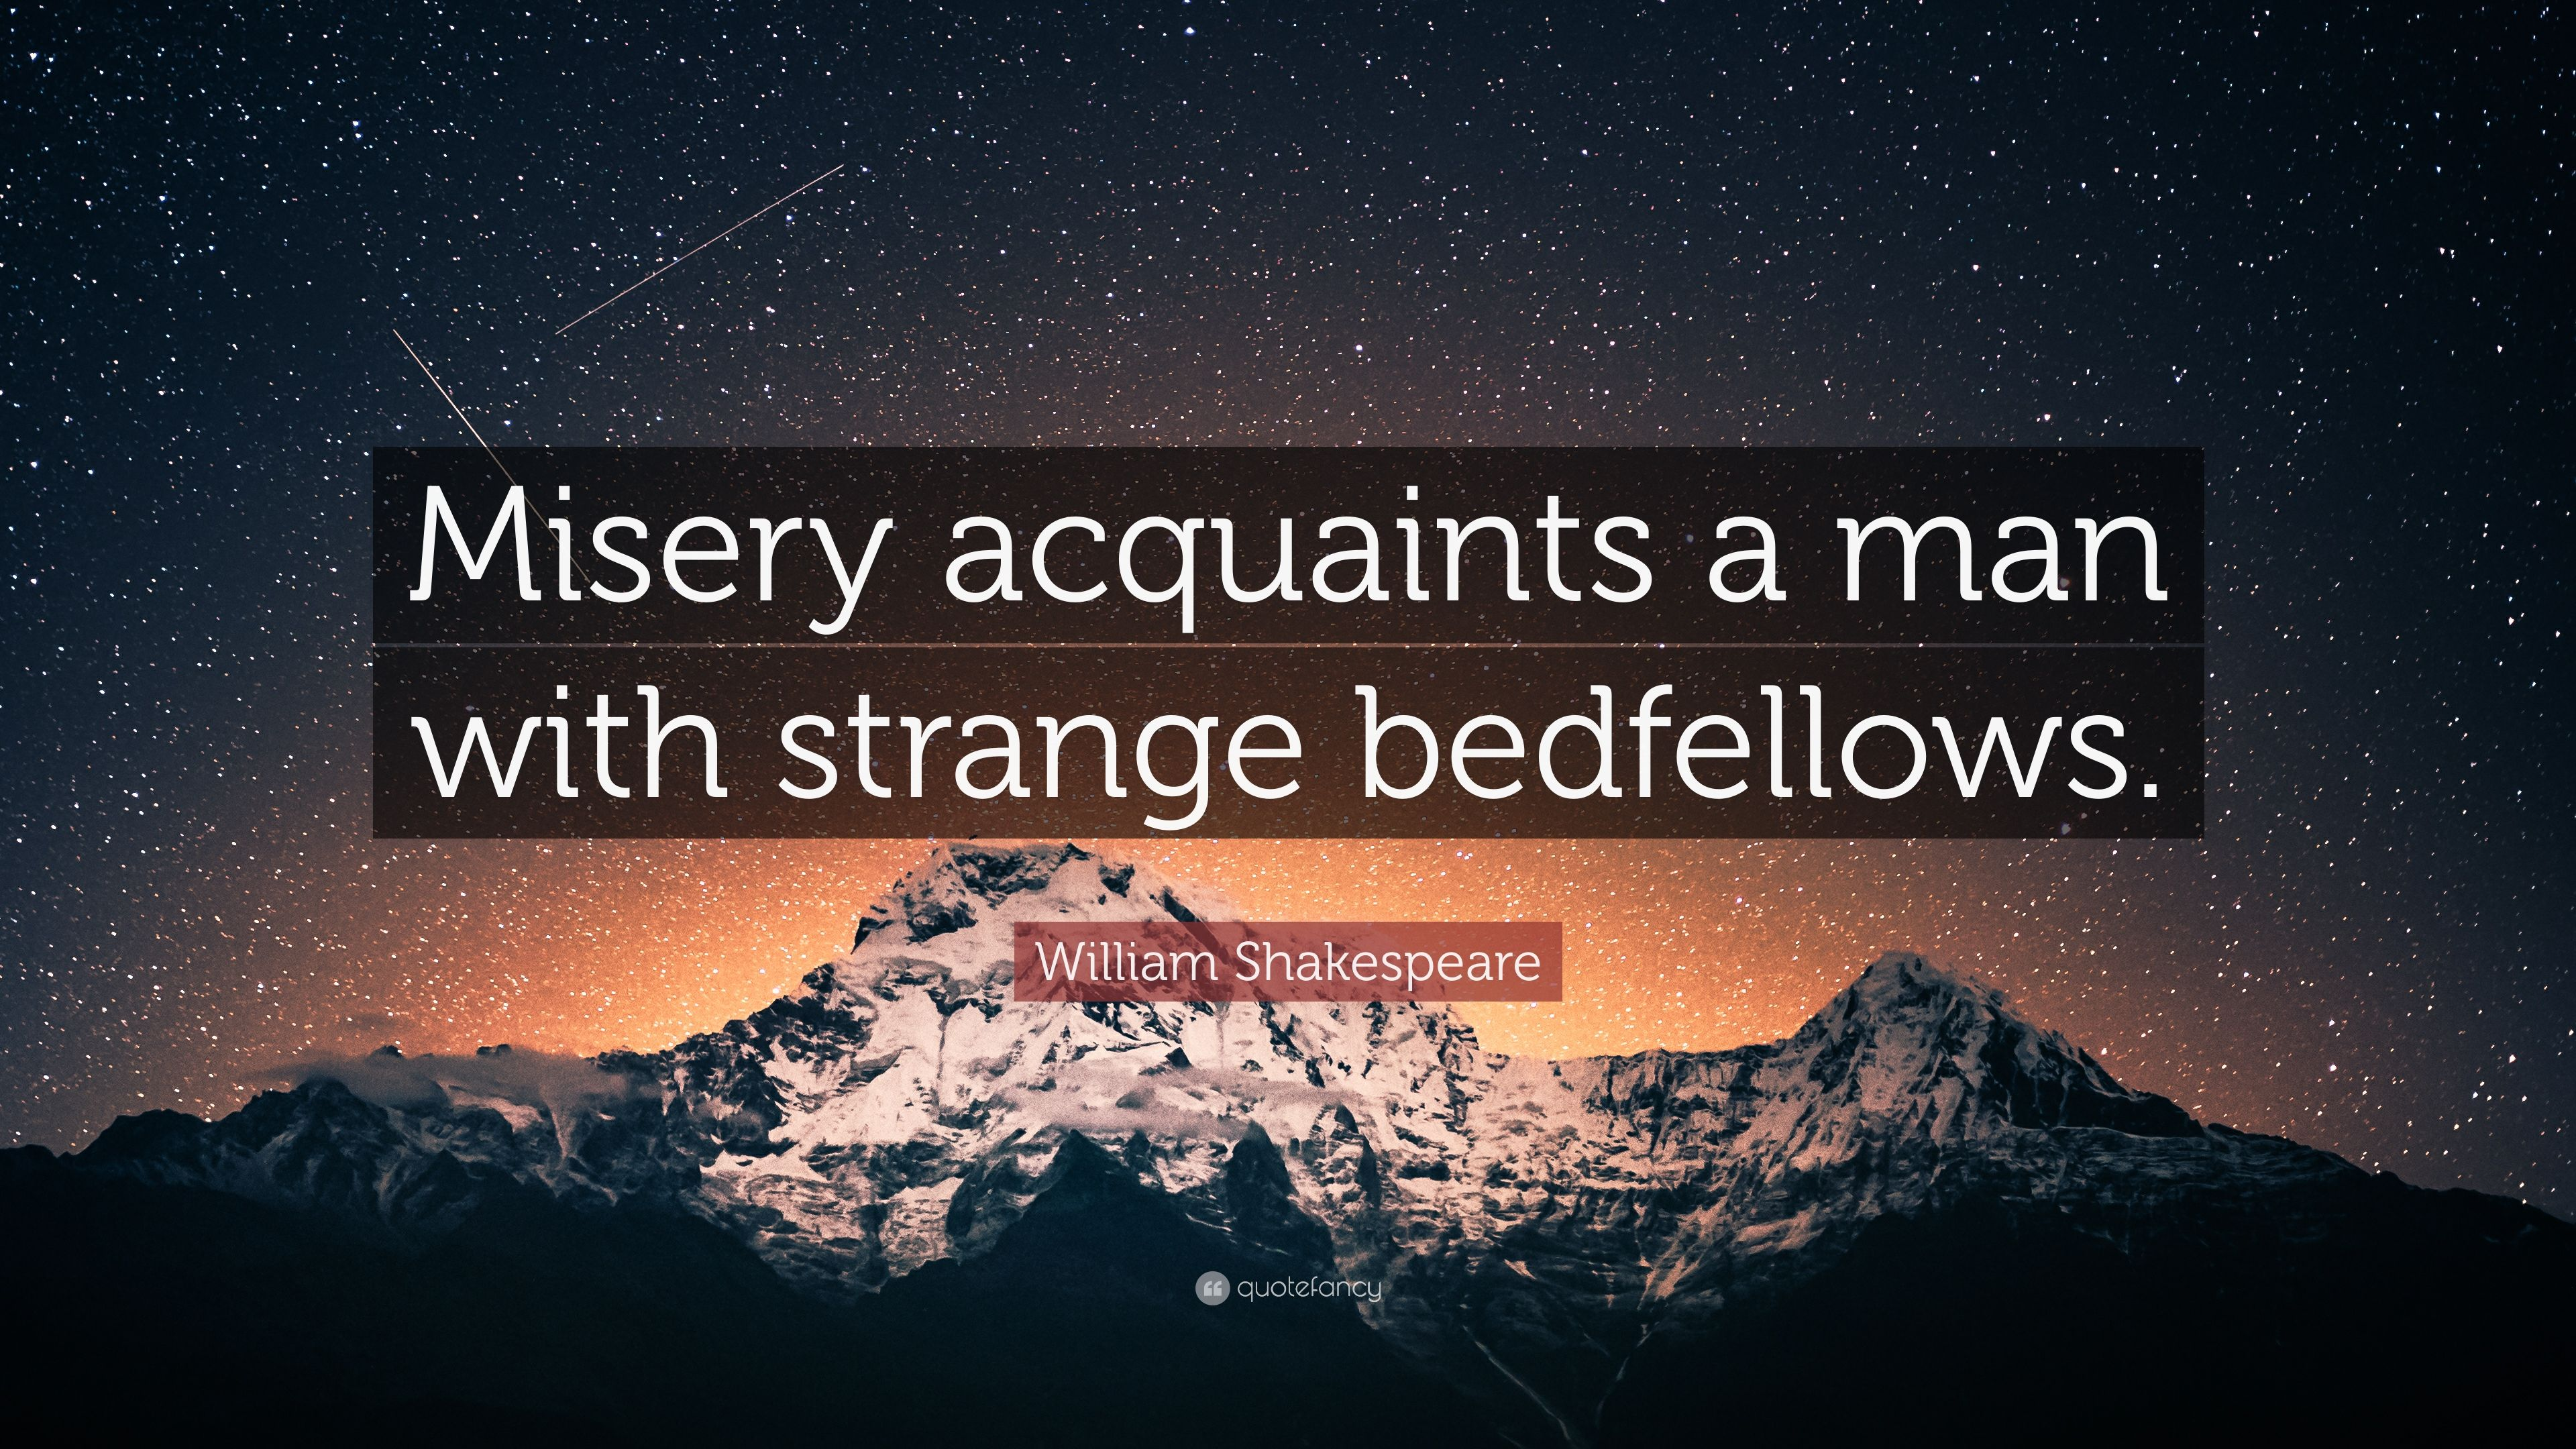 misery acquaints a man with strange bedfellows